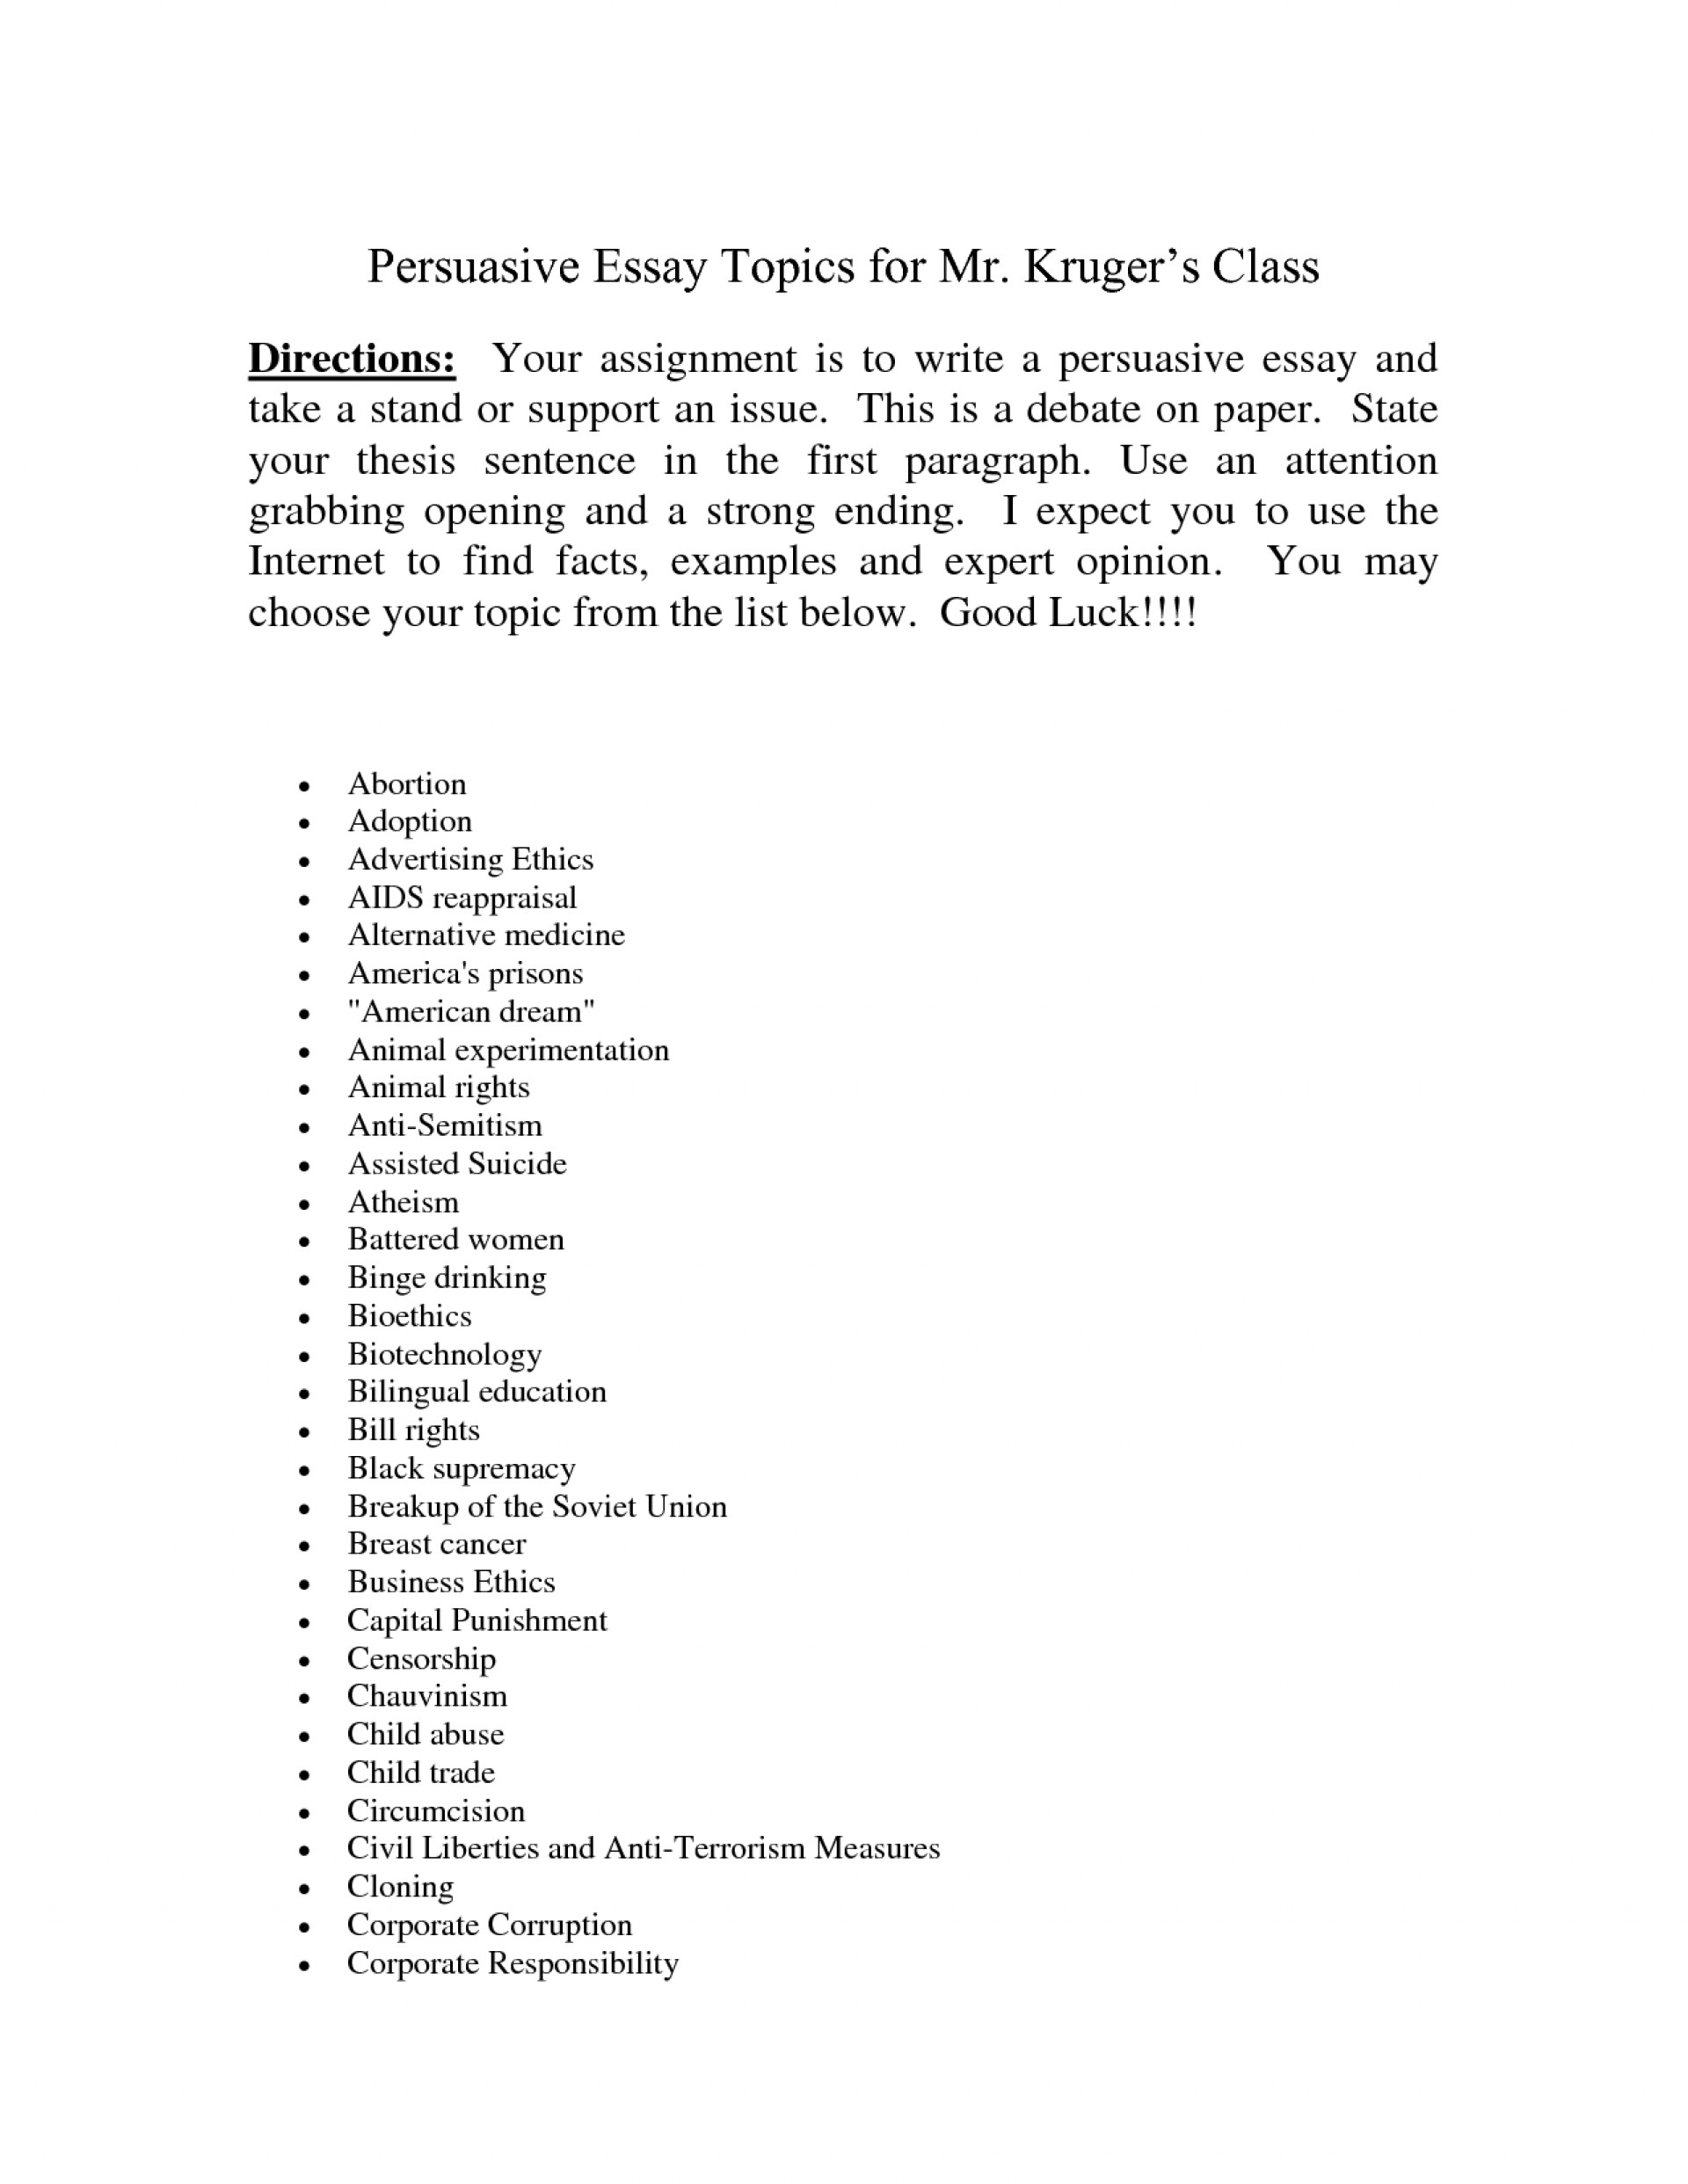 013 Argument Essay Student Samples Corporation Term Paper Writing List Of Argumentativepersuasive Topics Awesome Collection Strong Argumentative Best Topic Great College Good Research Gatsby Beautiful Persuasive 2017 Speech For Top 10 1920